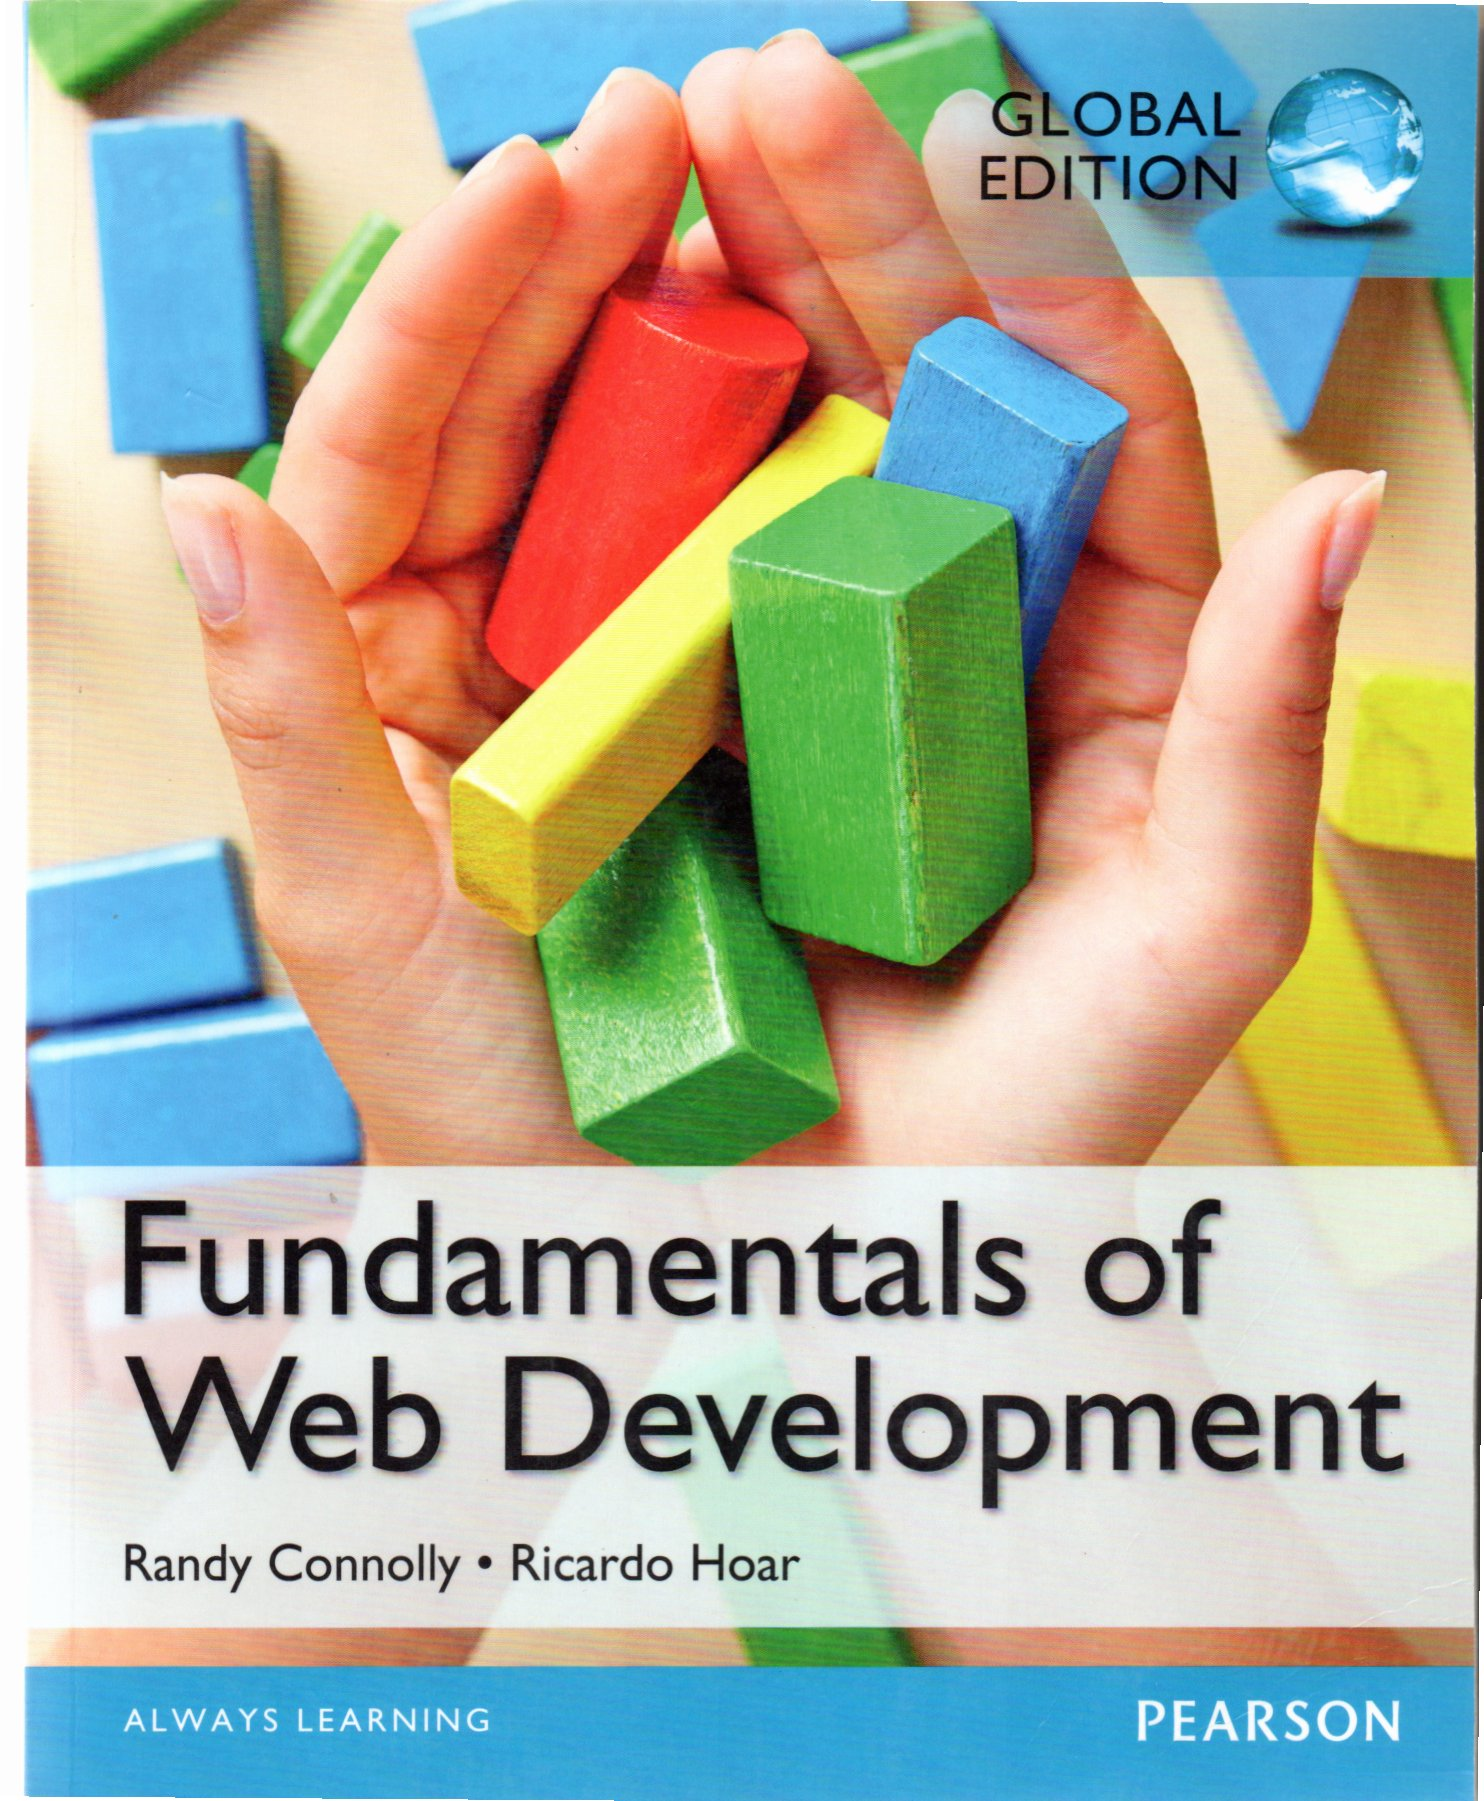 Fundamentals of web development /Randy Connolly